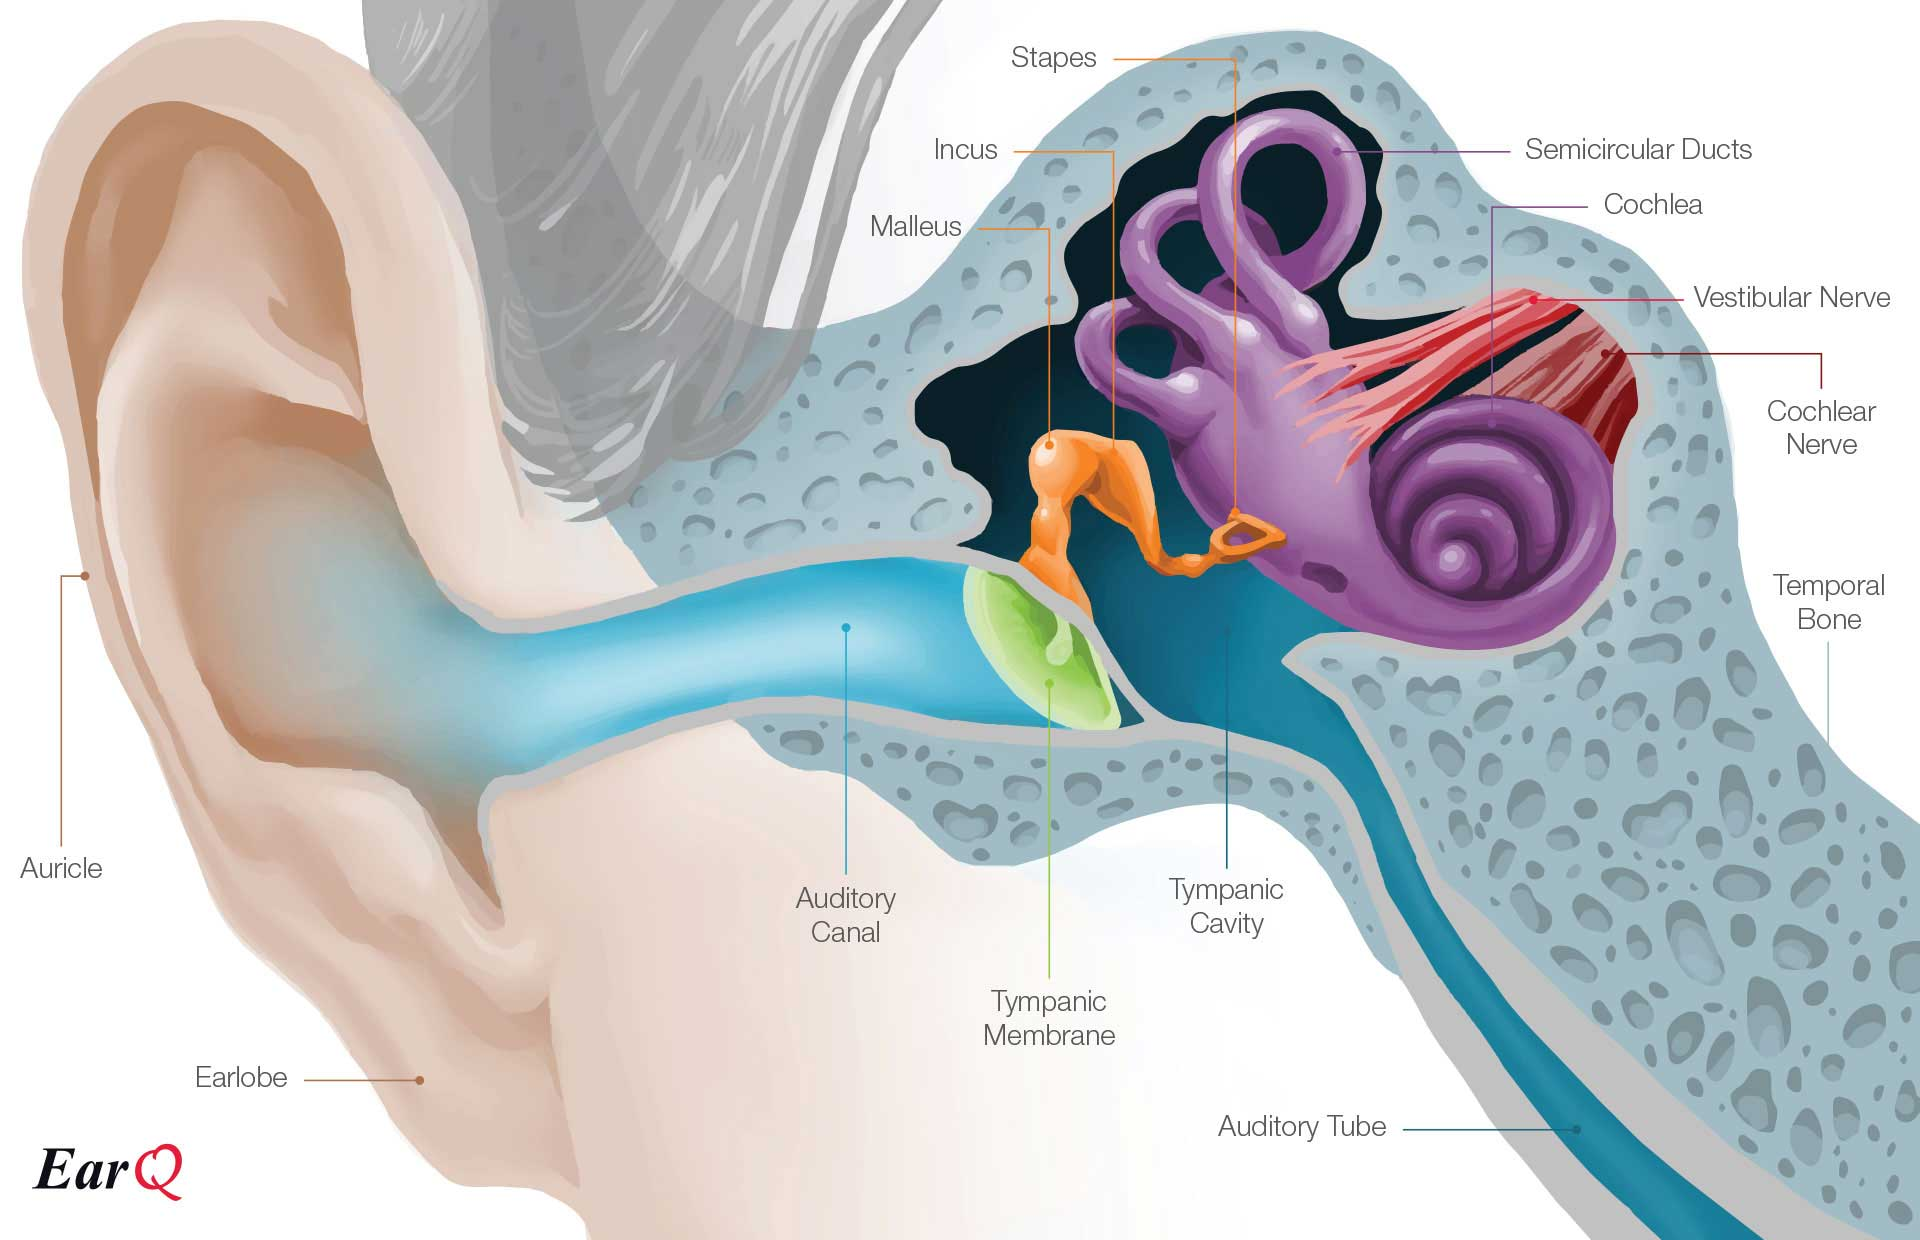 EarQ Anatomy of the Ear Chart